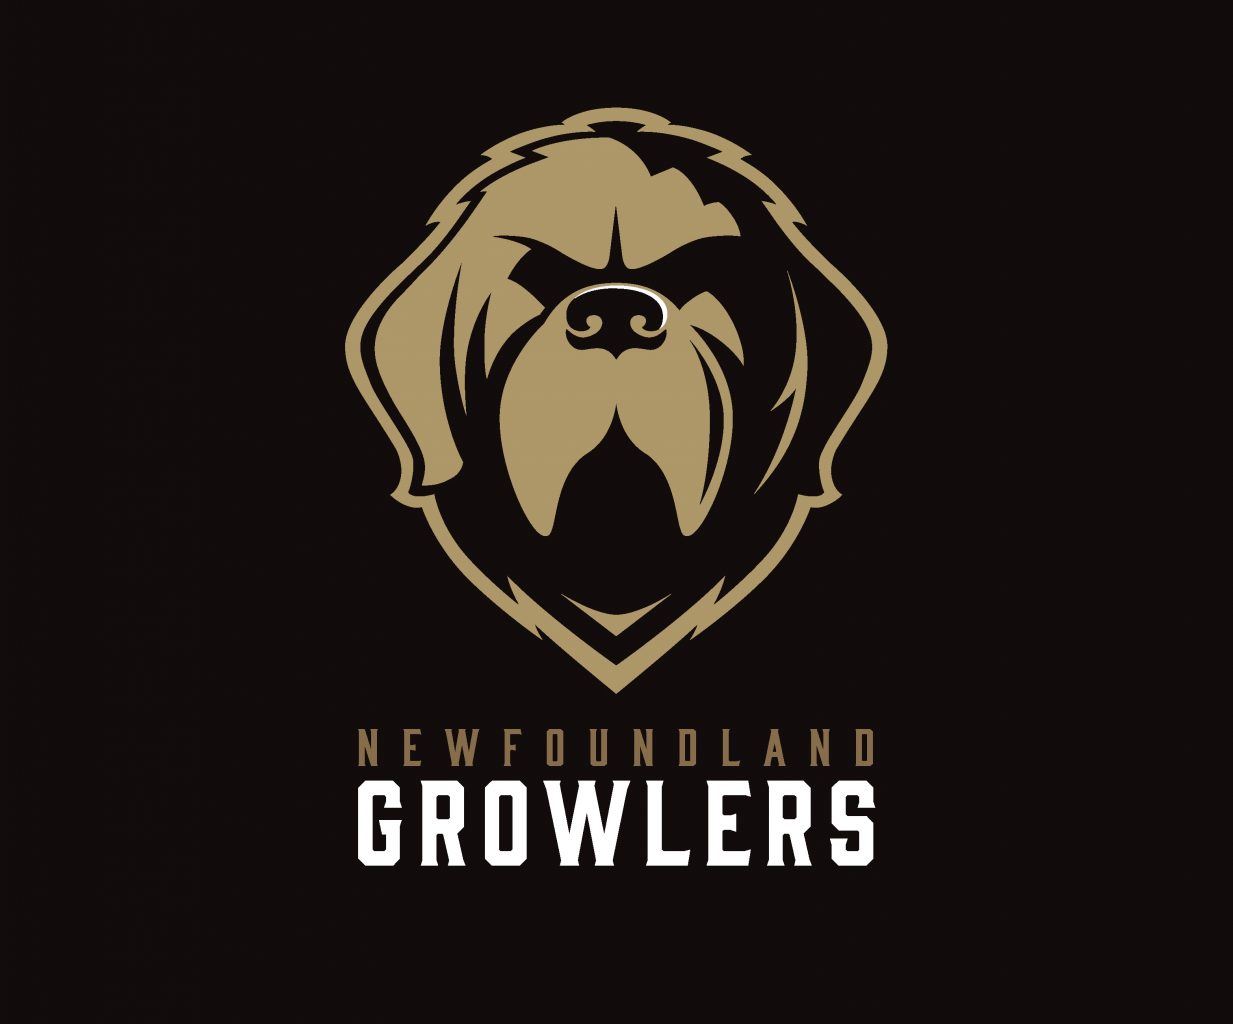 NL GROWLERS VS. JACKSONVILLE LIZARD KINGS